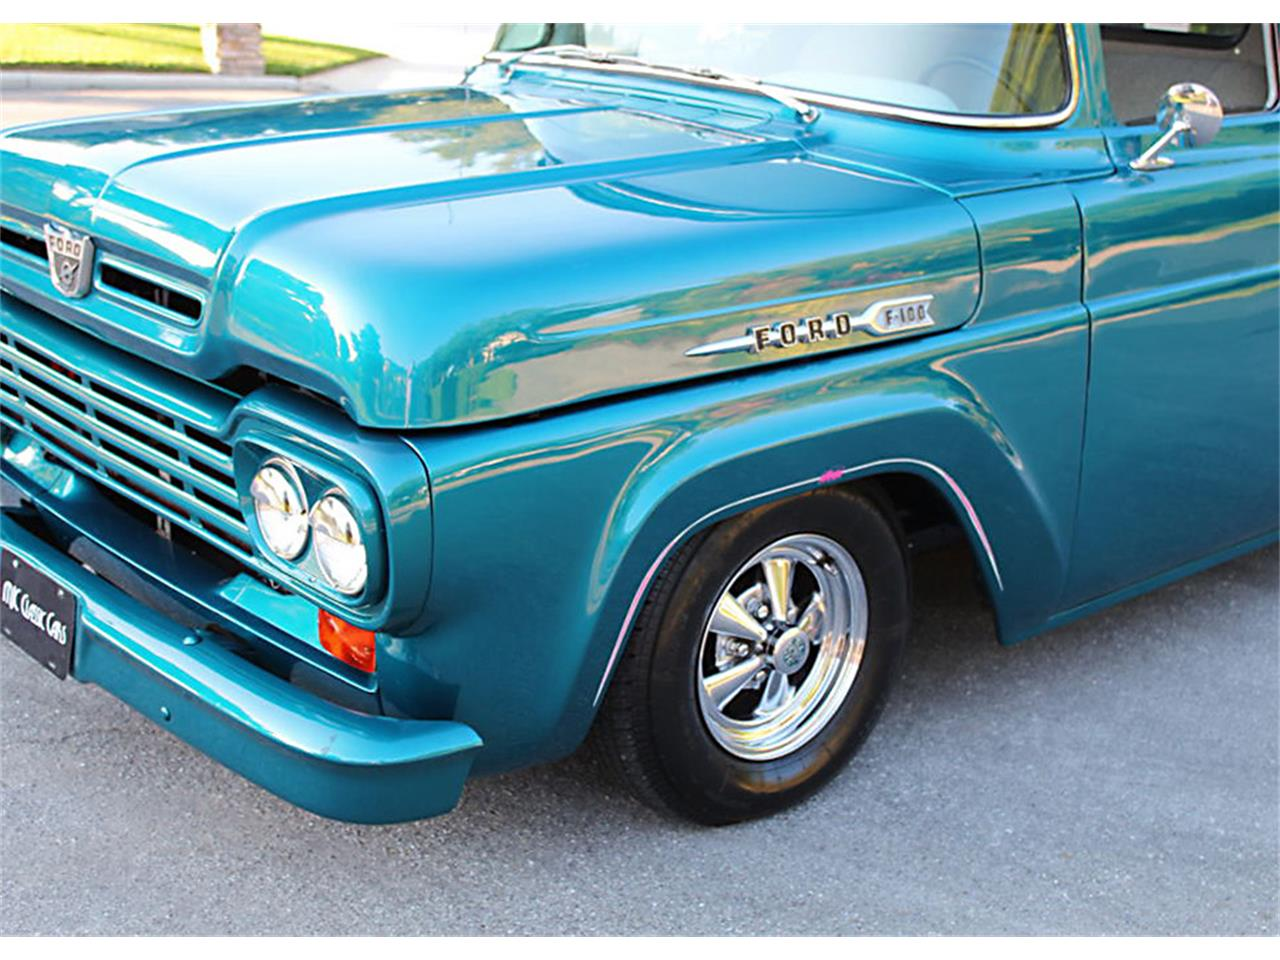 Large Picture of 1959 Ford F100 - $29,500.00 Offered by MJC Classic Cars - QAHS